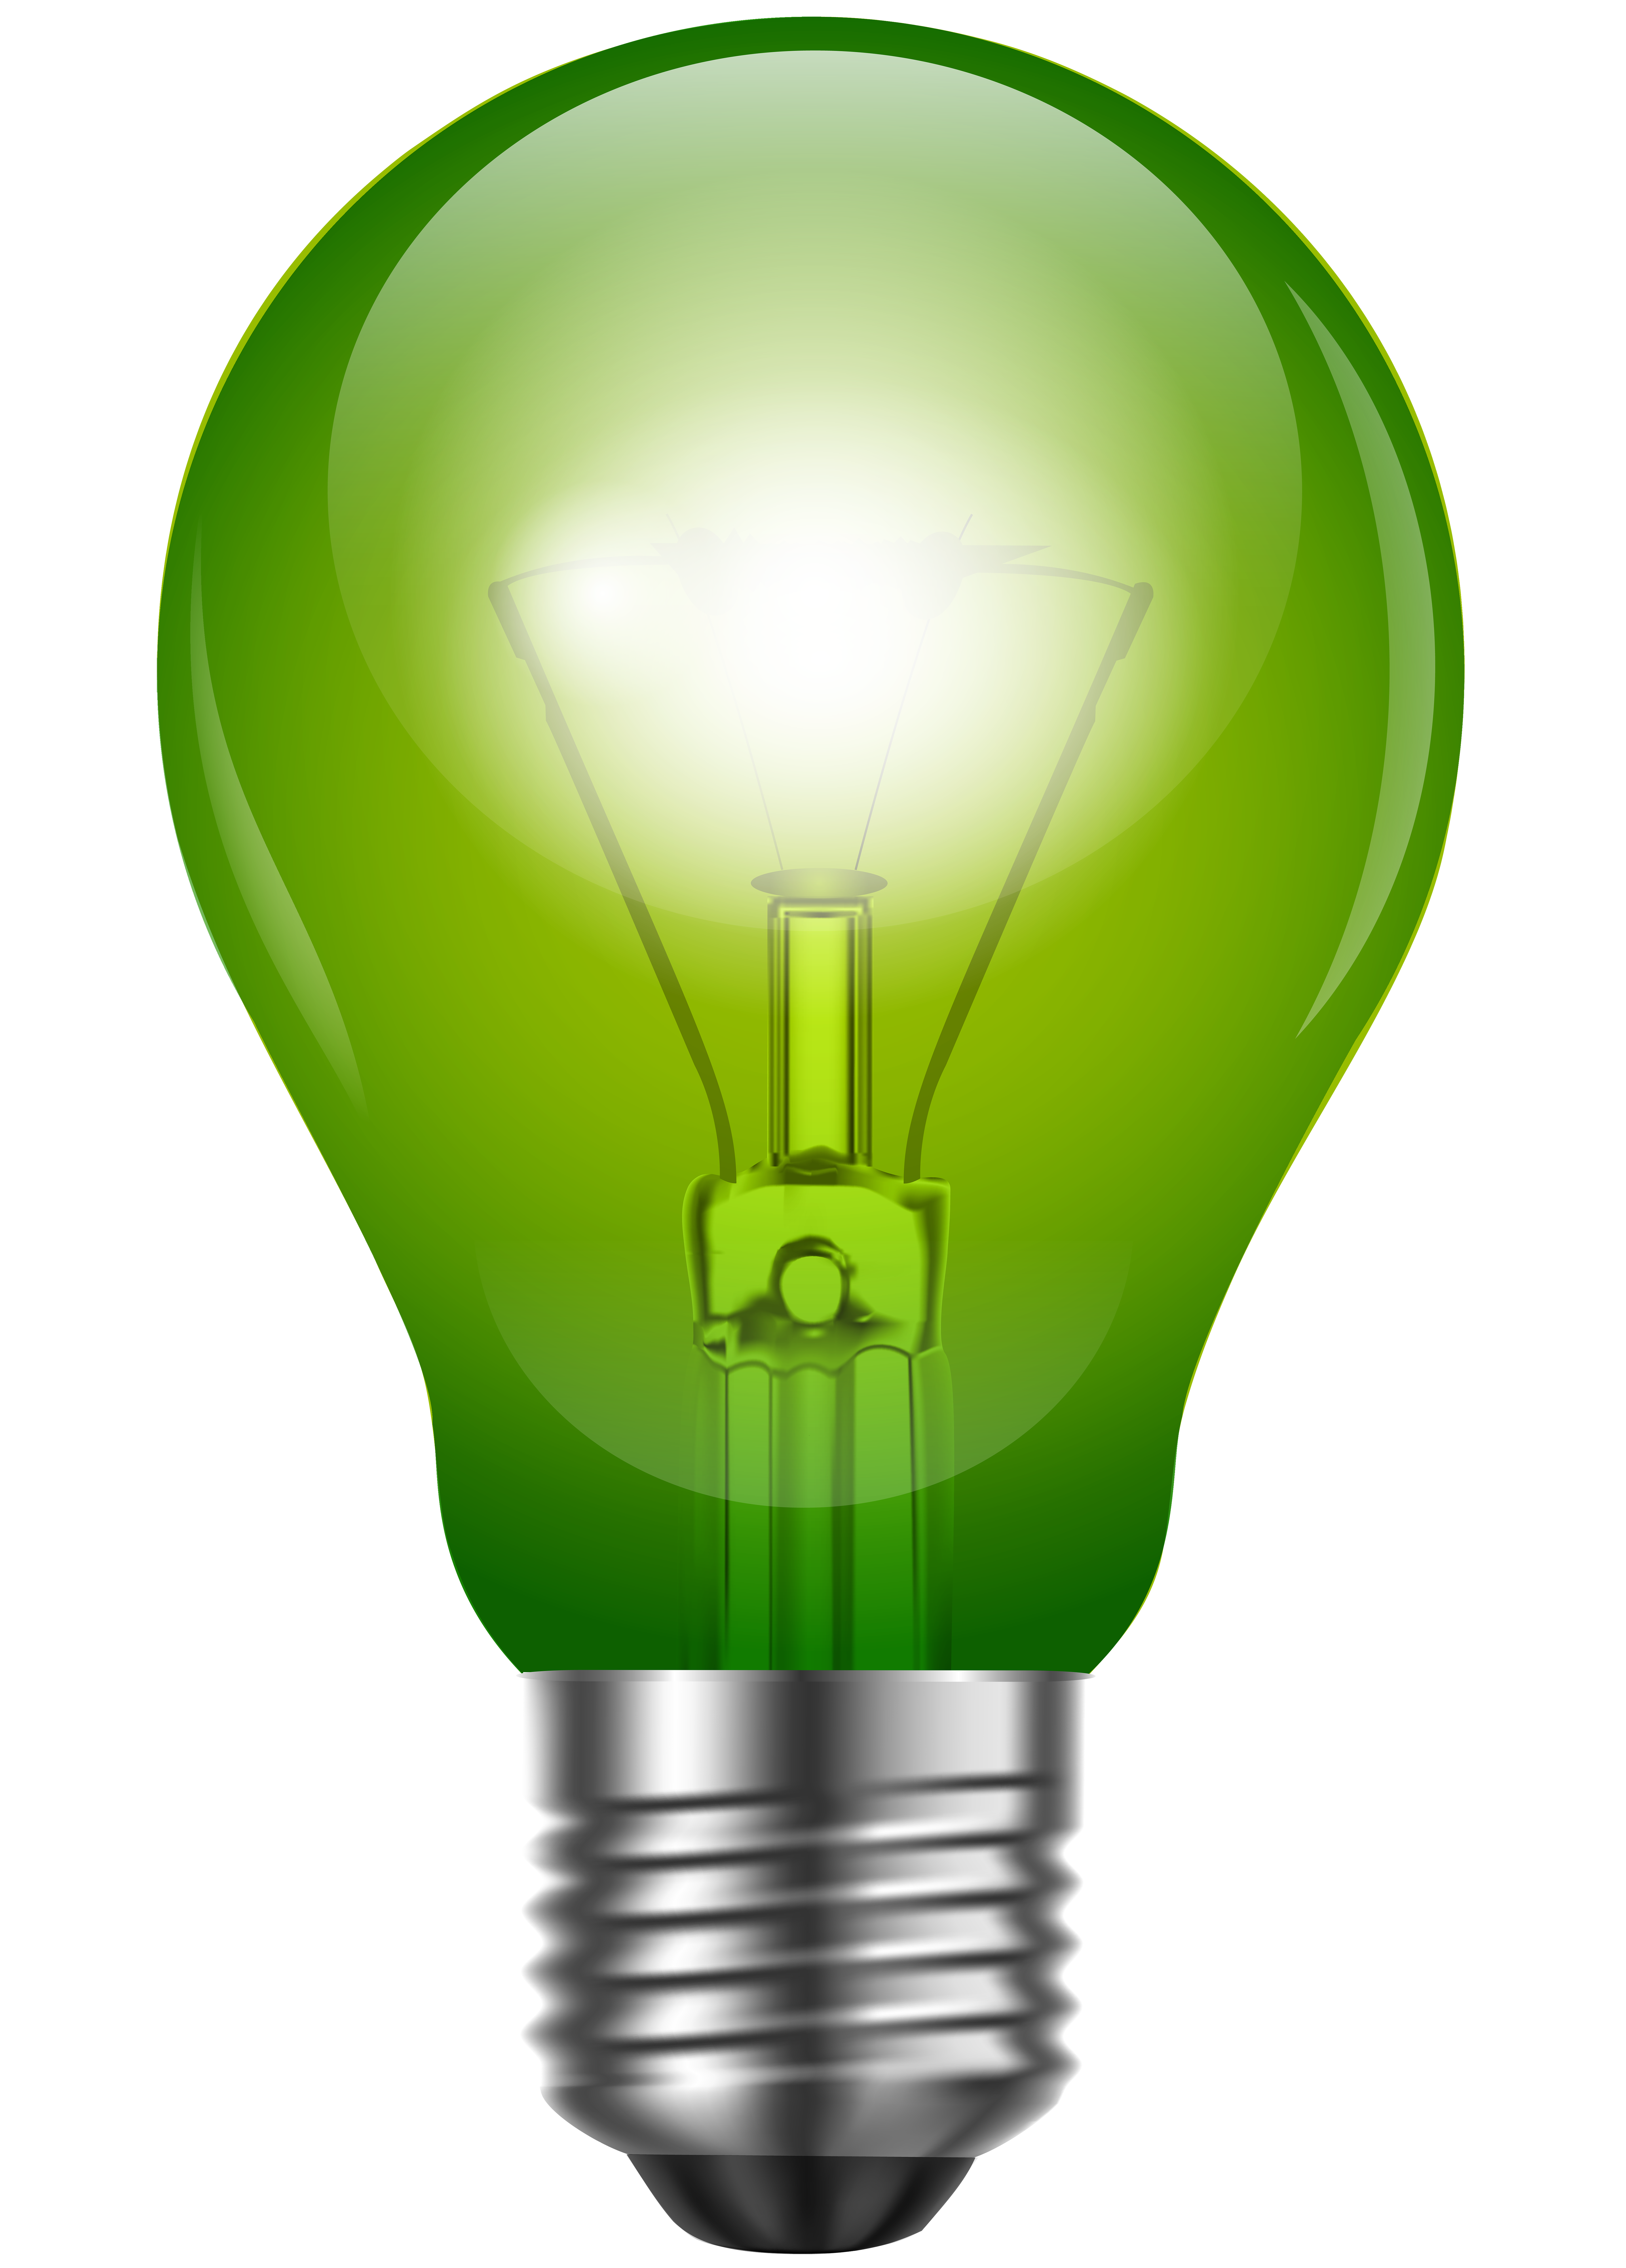 royalty free stock Green bulb png clip. Lighting clipart uses light.